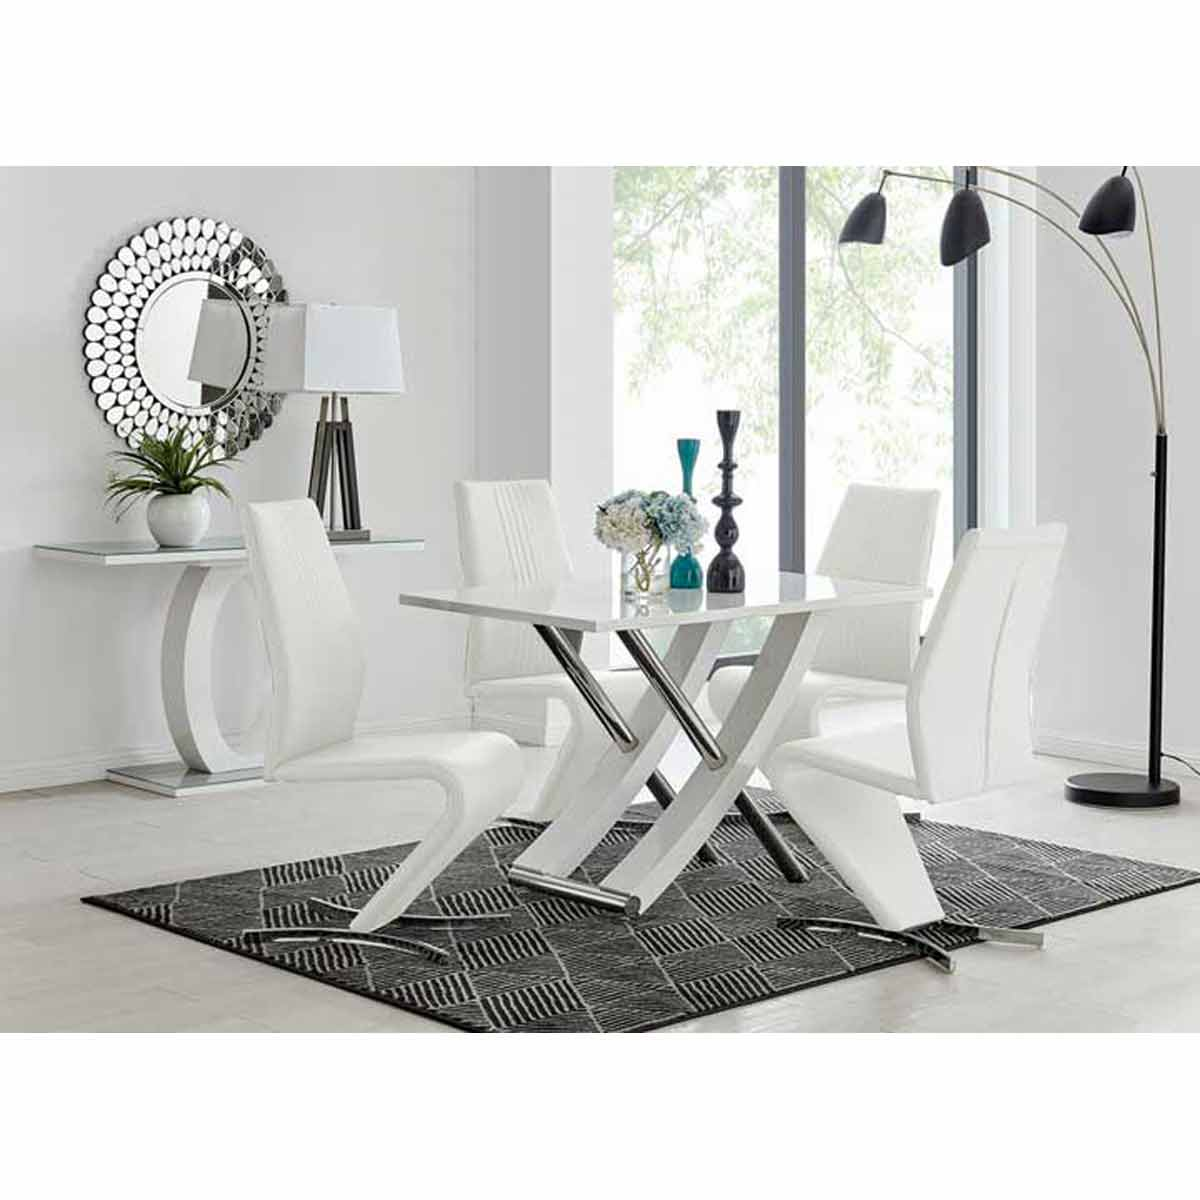 Furniture Box Mayfair 4 Seater White High Gloss And Stainless Steel Dining Table And 4 White Luxury Willow Chairs Set